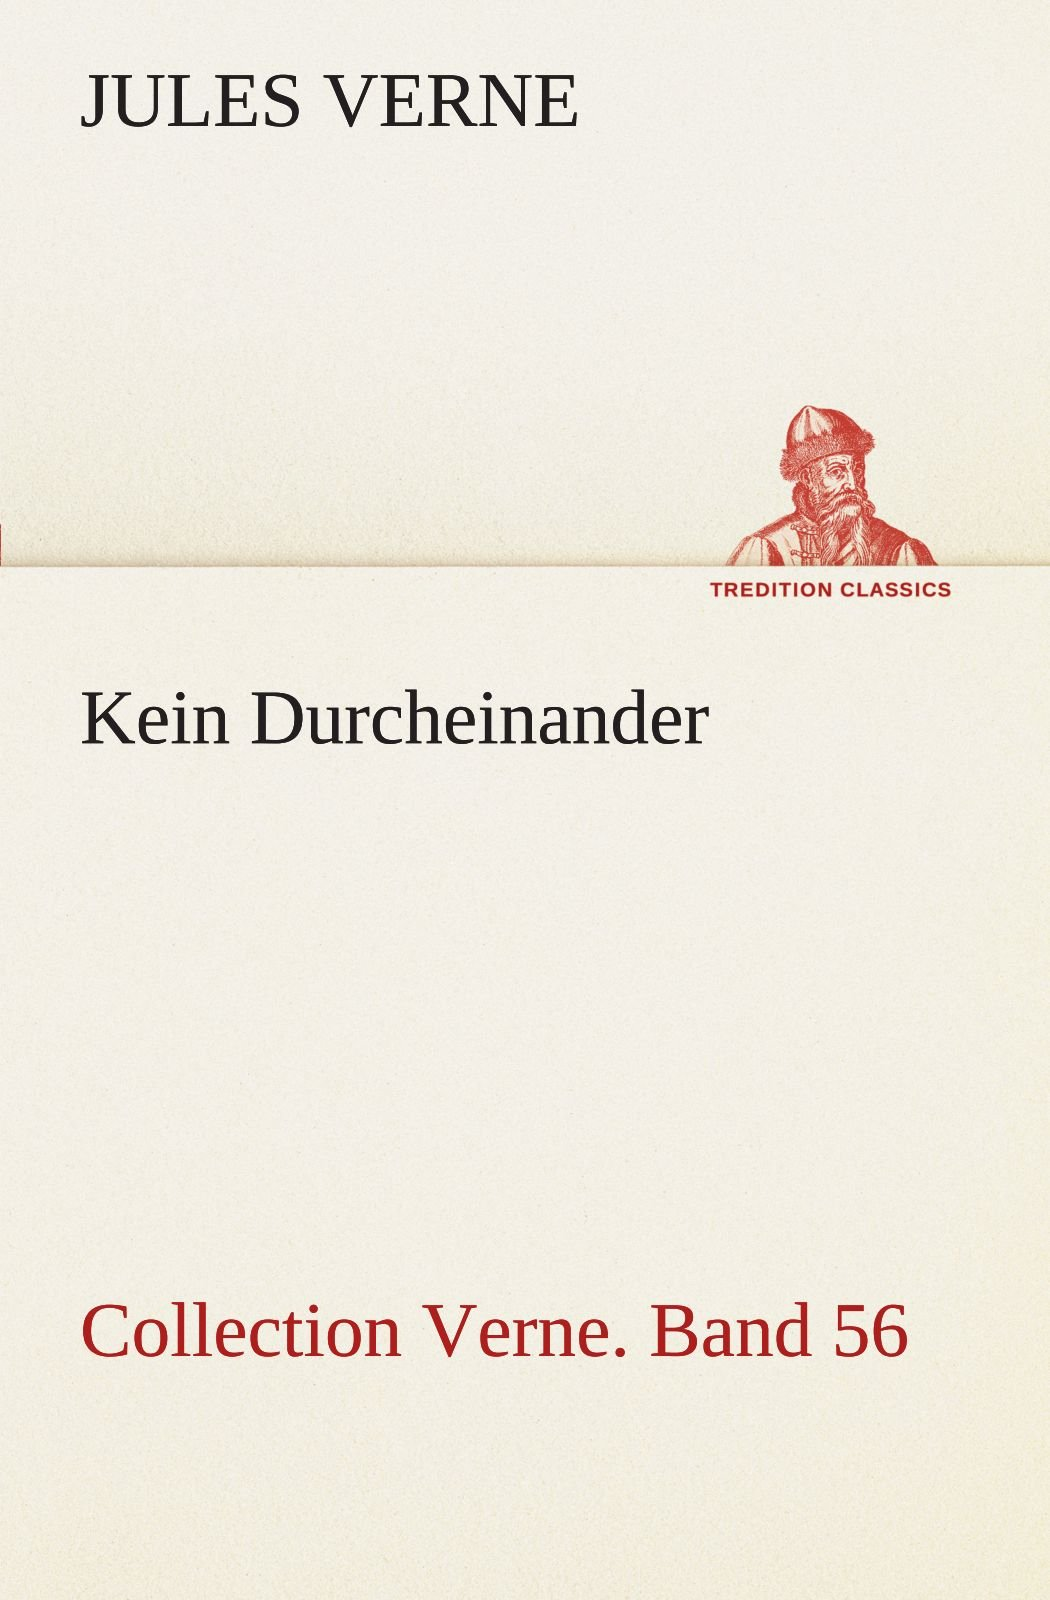 Download Kein Durcheinander: Collection Verne. Band 56 (TREDITION CLASSICS) (German Edition) ebook